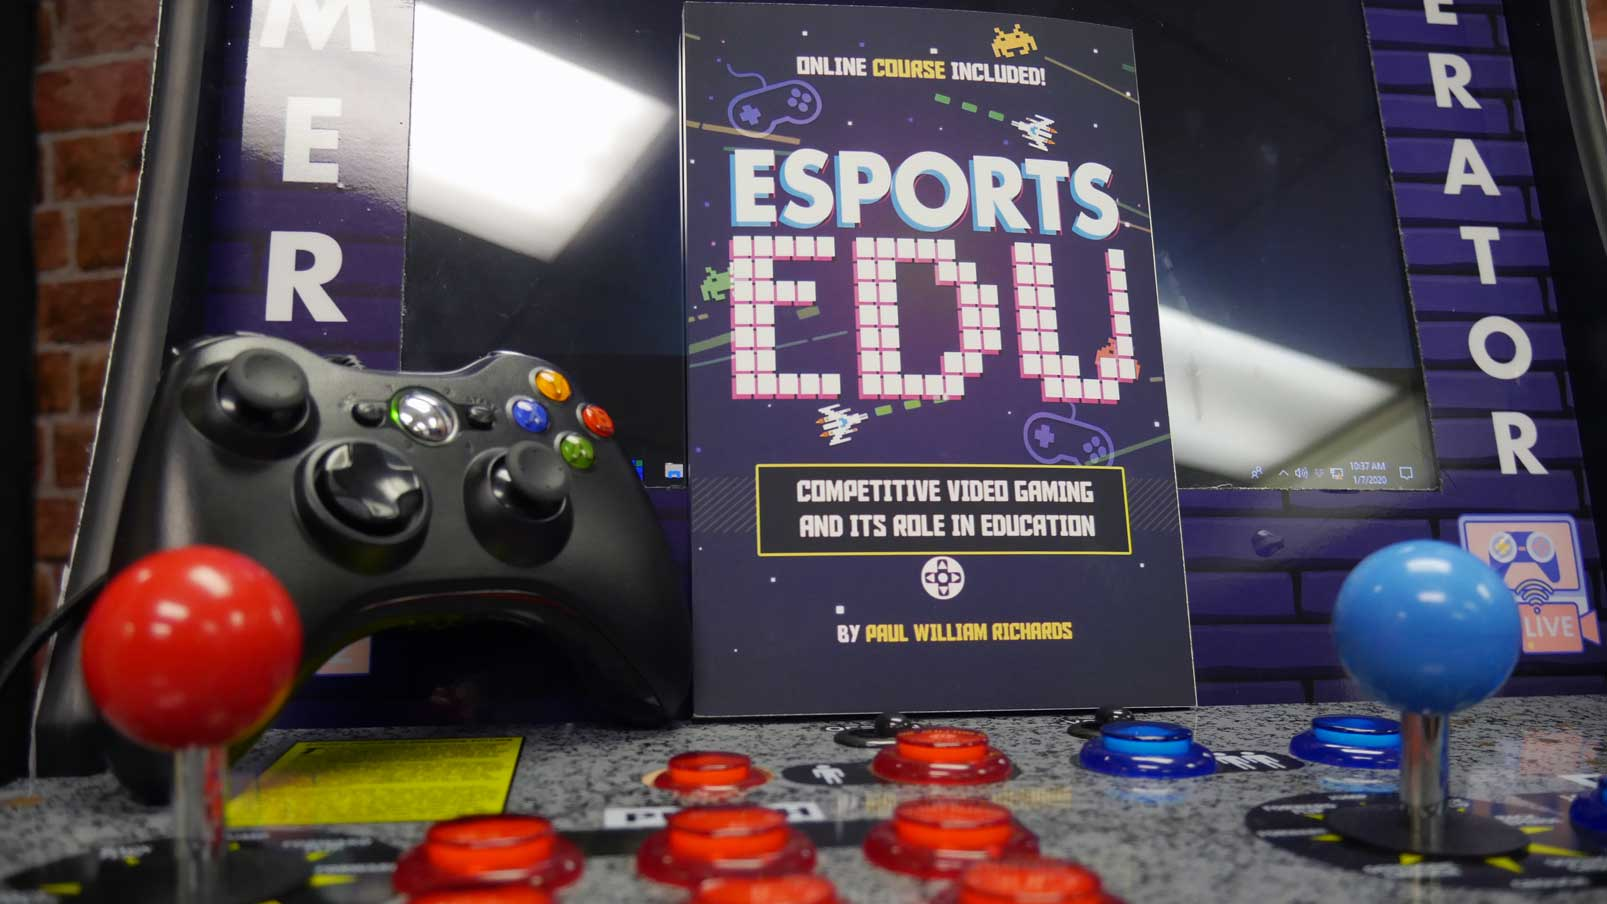 Esports in education book